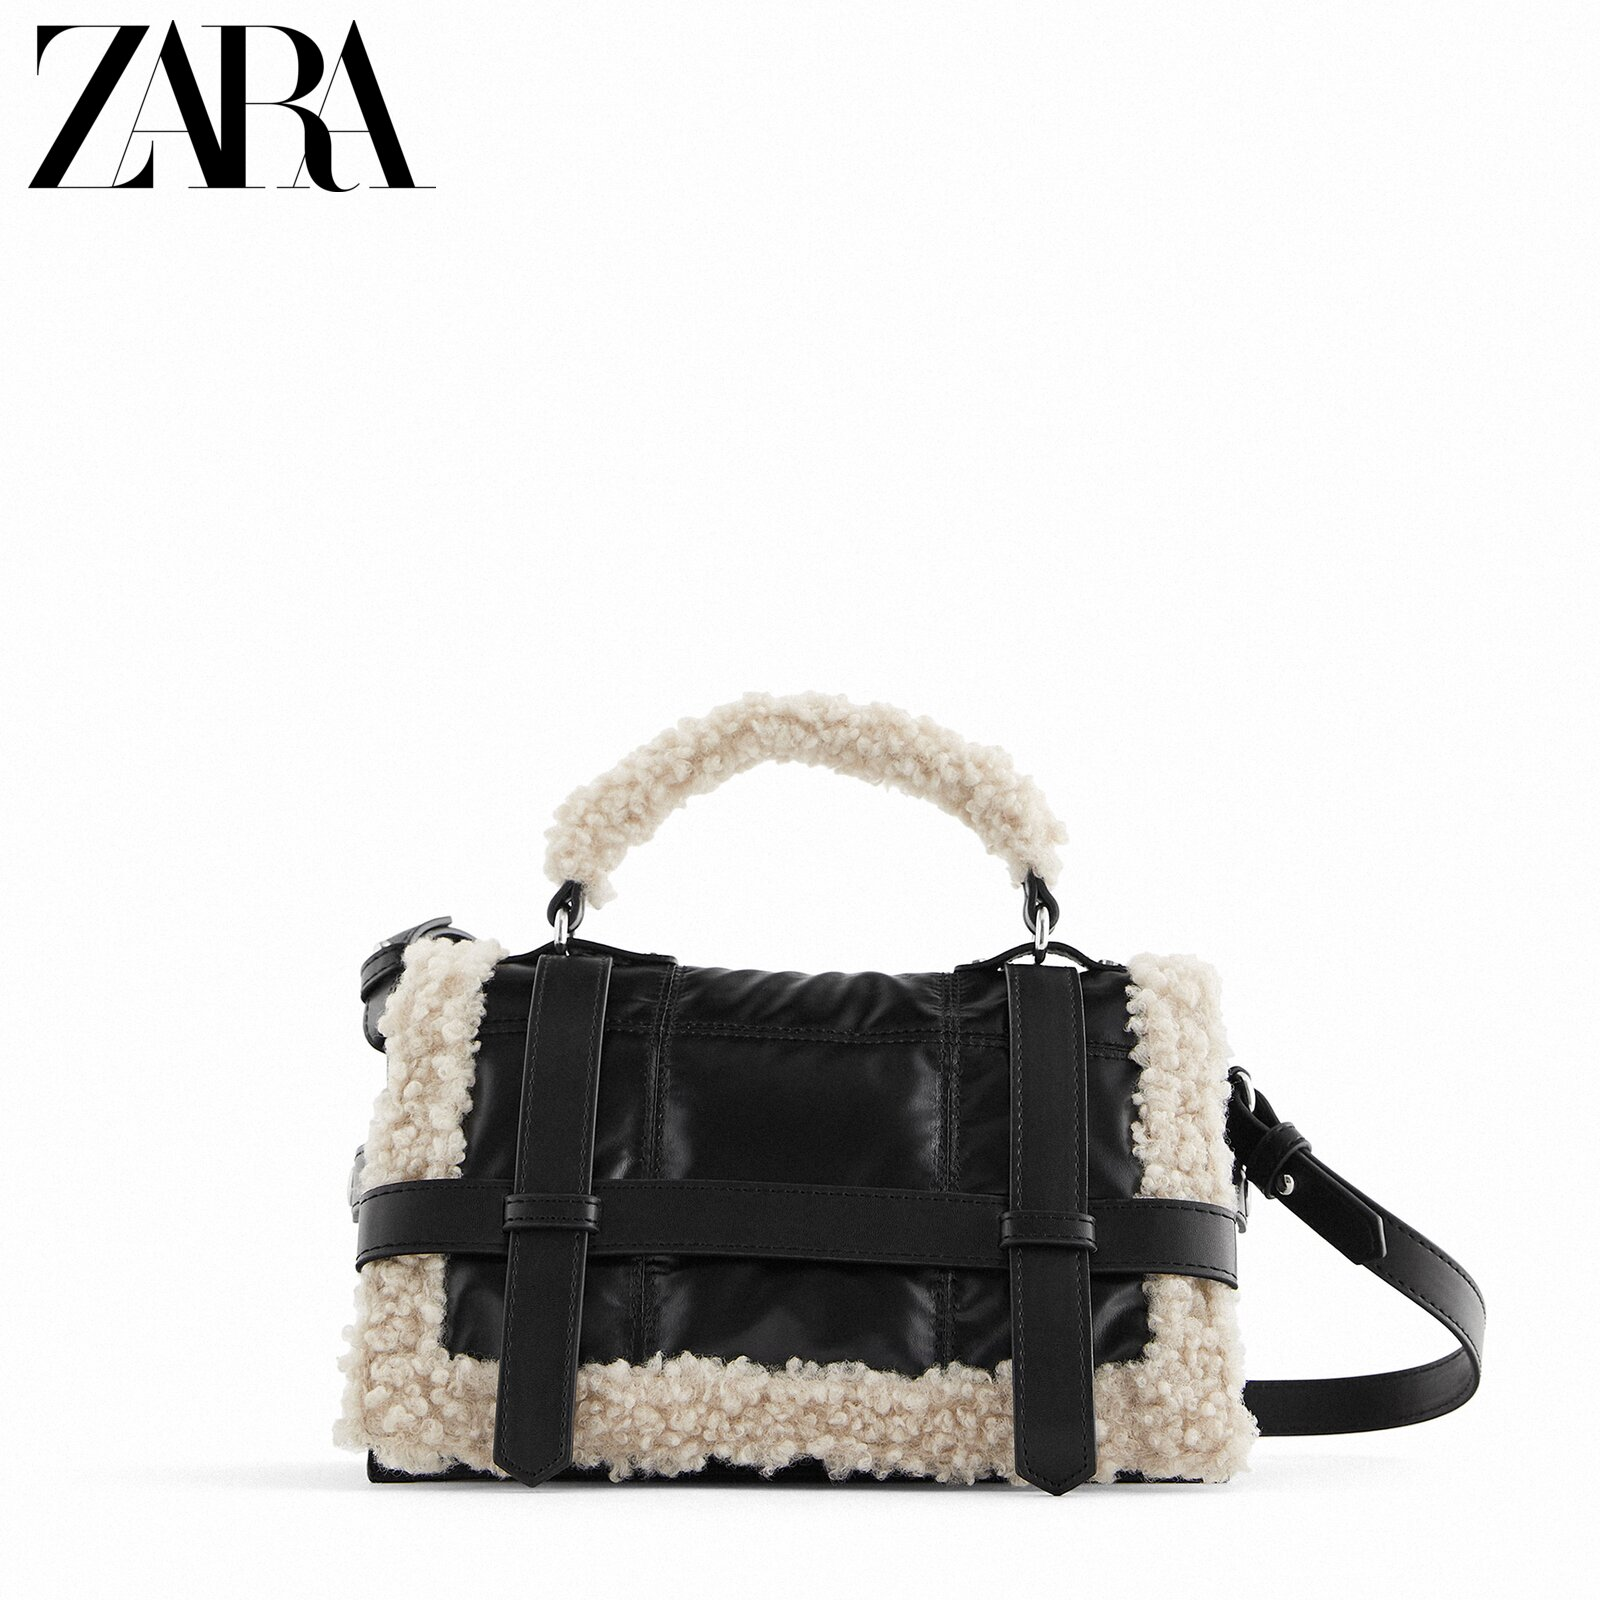 Zara new female bag black fleece quilted urban casual bag 16527610040